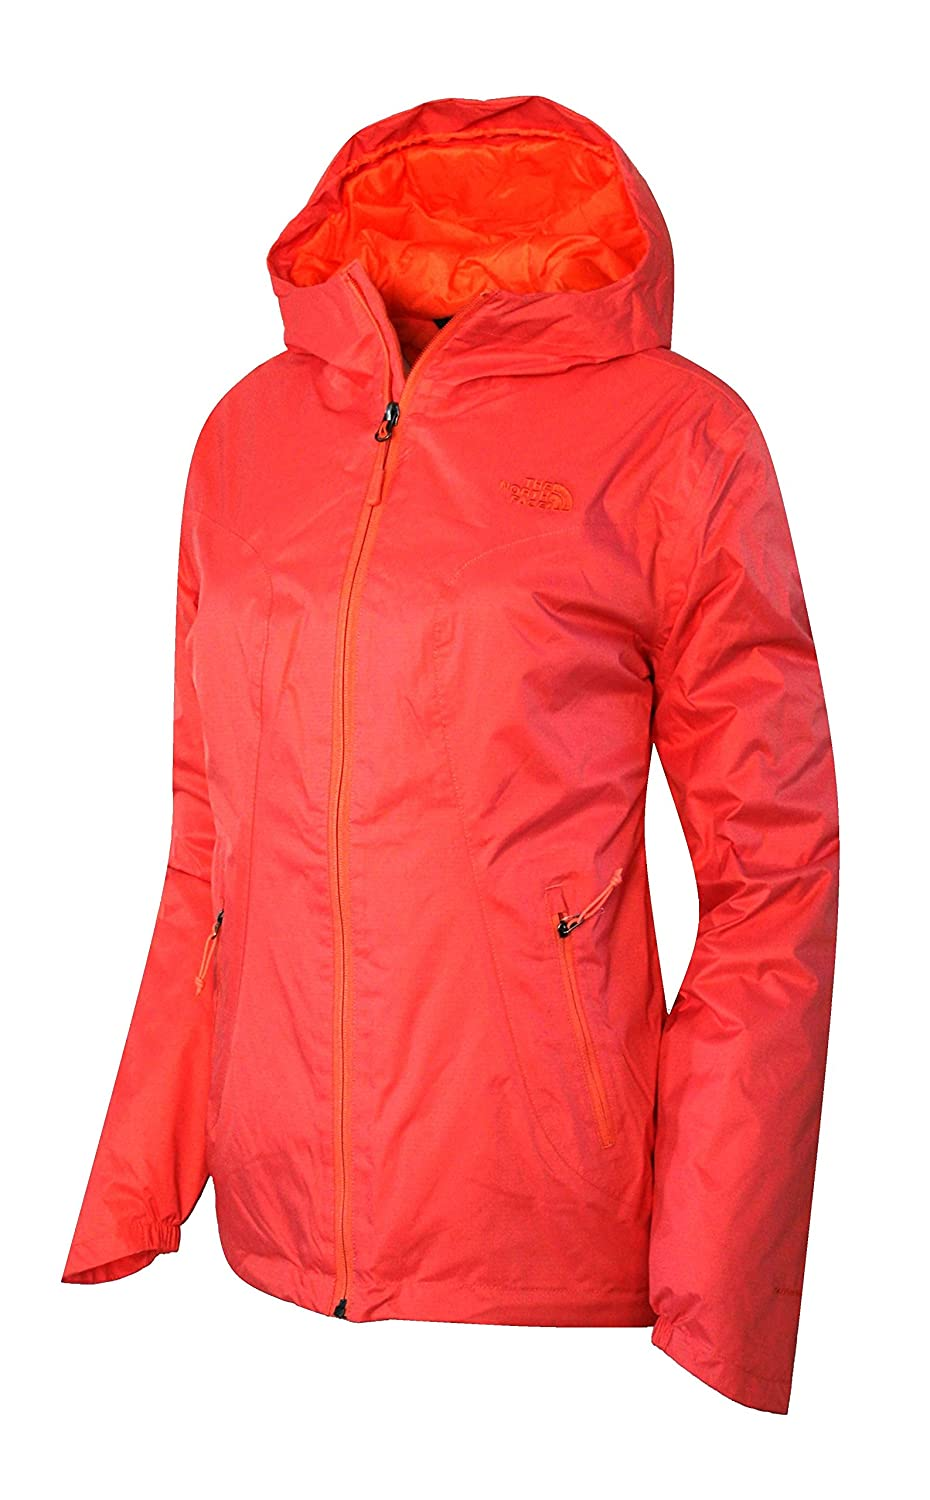 3df13f0039e6 Top 10 wholesale Insulated Rain Jacket Womens - Chinabrands.com